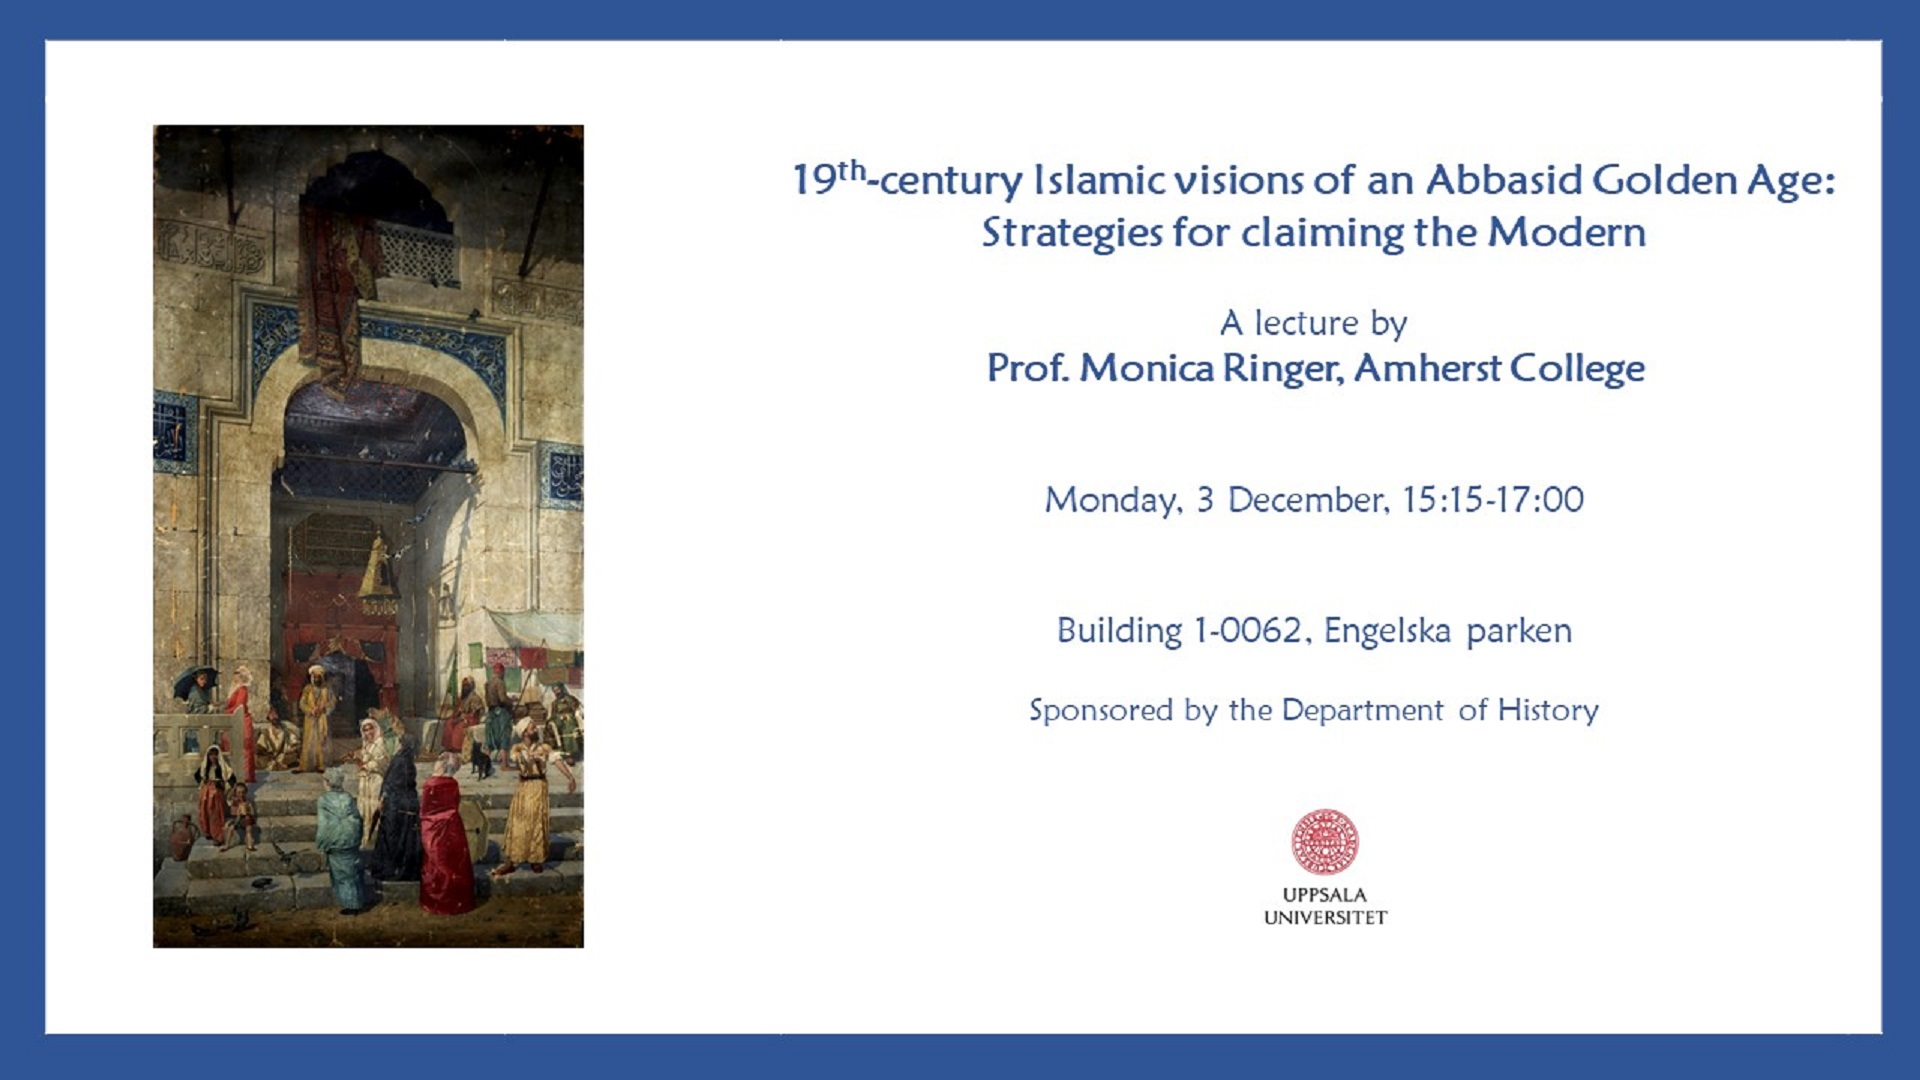 A lecture by Professor Monica Ringer: 19th-century Islamic visions of an Abbasid  Golden Age: Strategies for claiming the  Modern